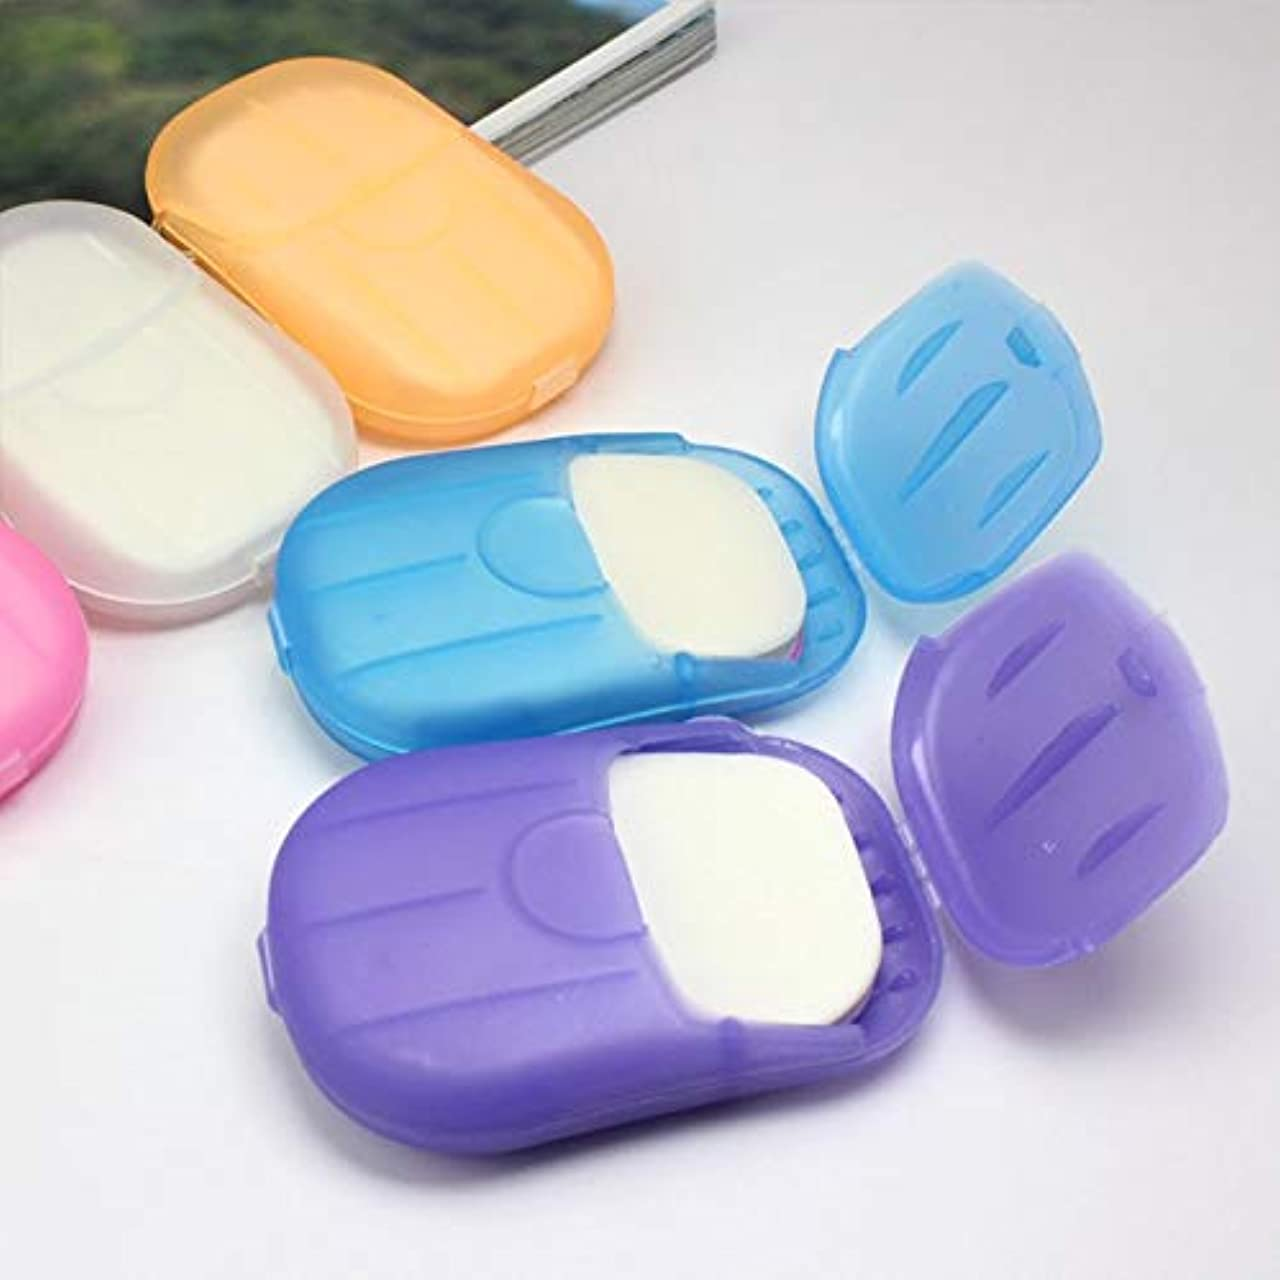 彼らはセメント更新する20 Pcs Paper Soap Outdoor Travel Bath Soap Tablets Portable Hand-washing